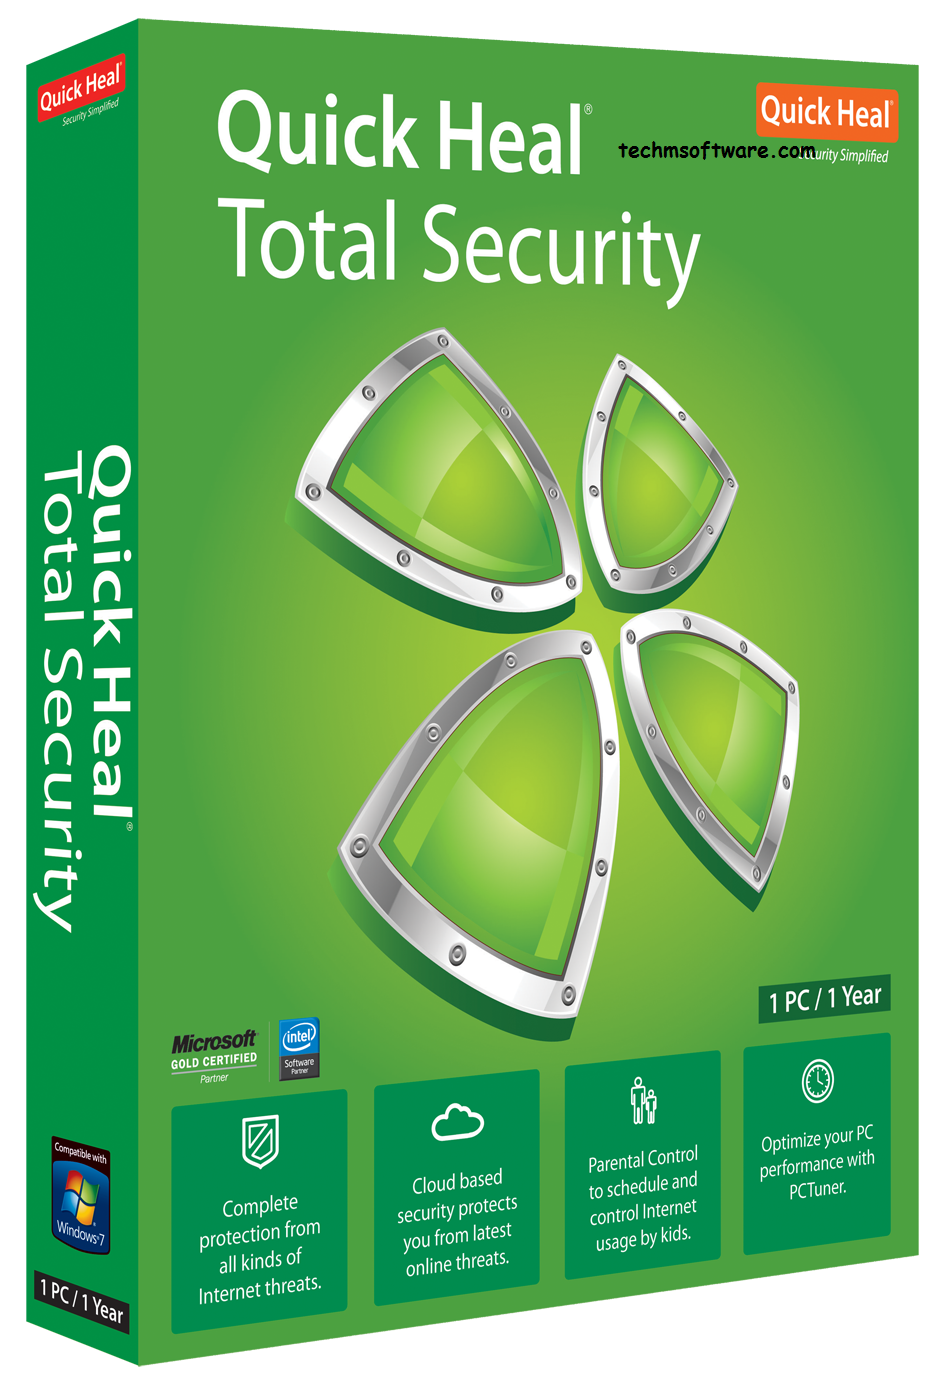 Download manycam enterprise 5 0 5 2 multilingual - Quick Heal Total Security 2017 Crack With Product Key Free Download From Here And You Can